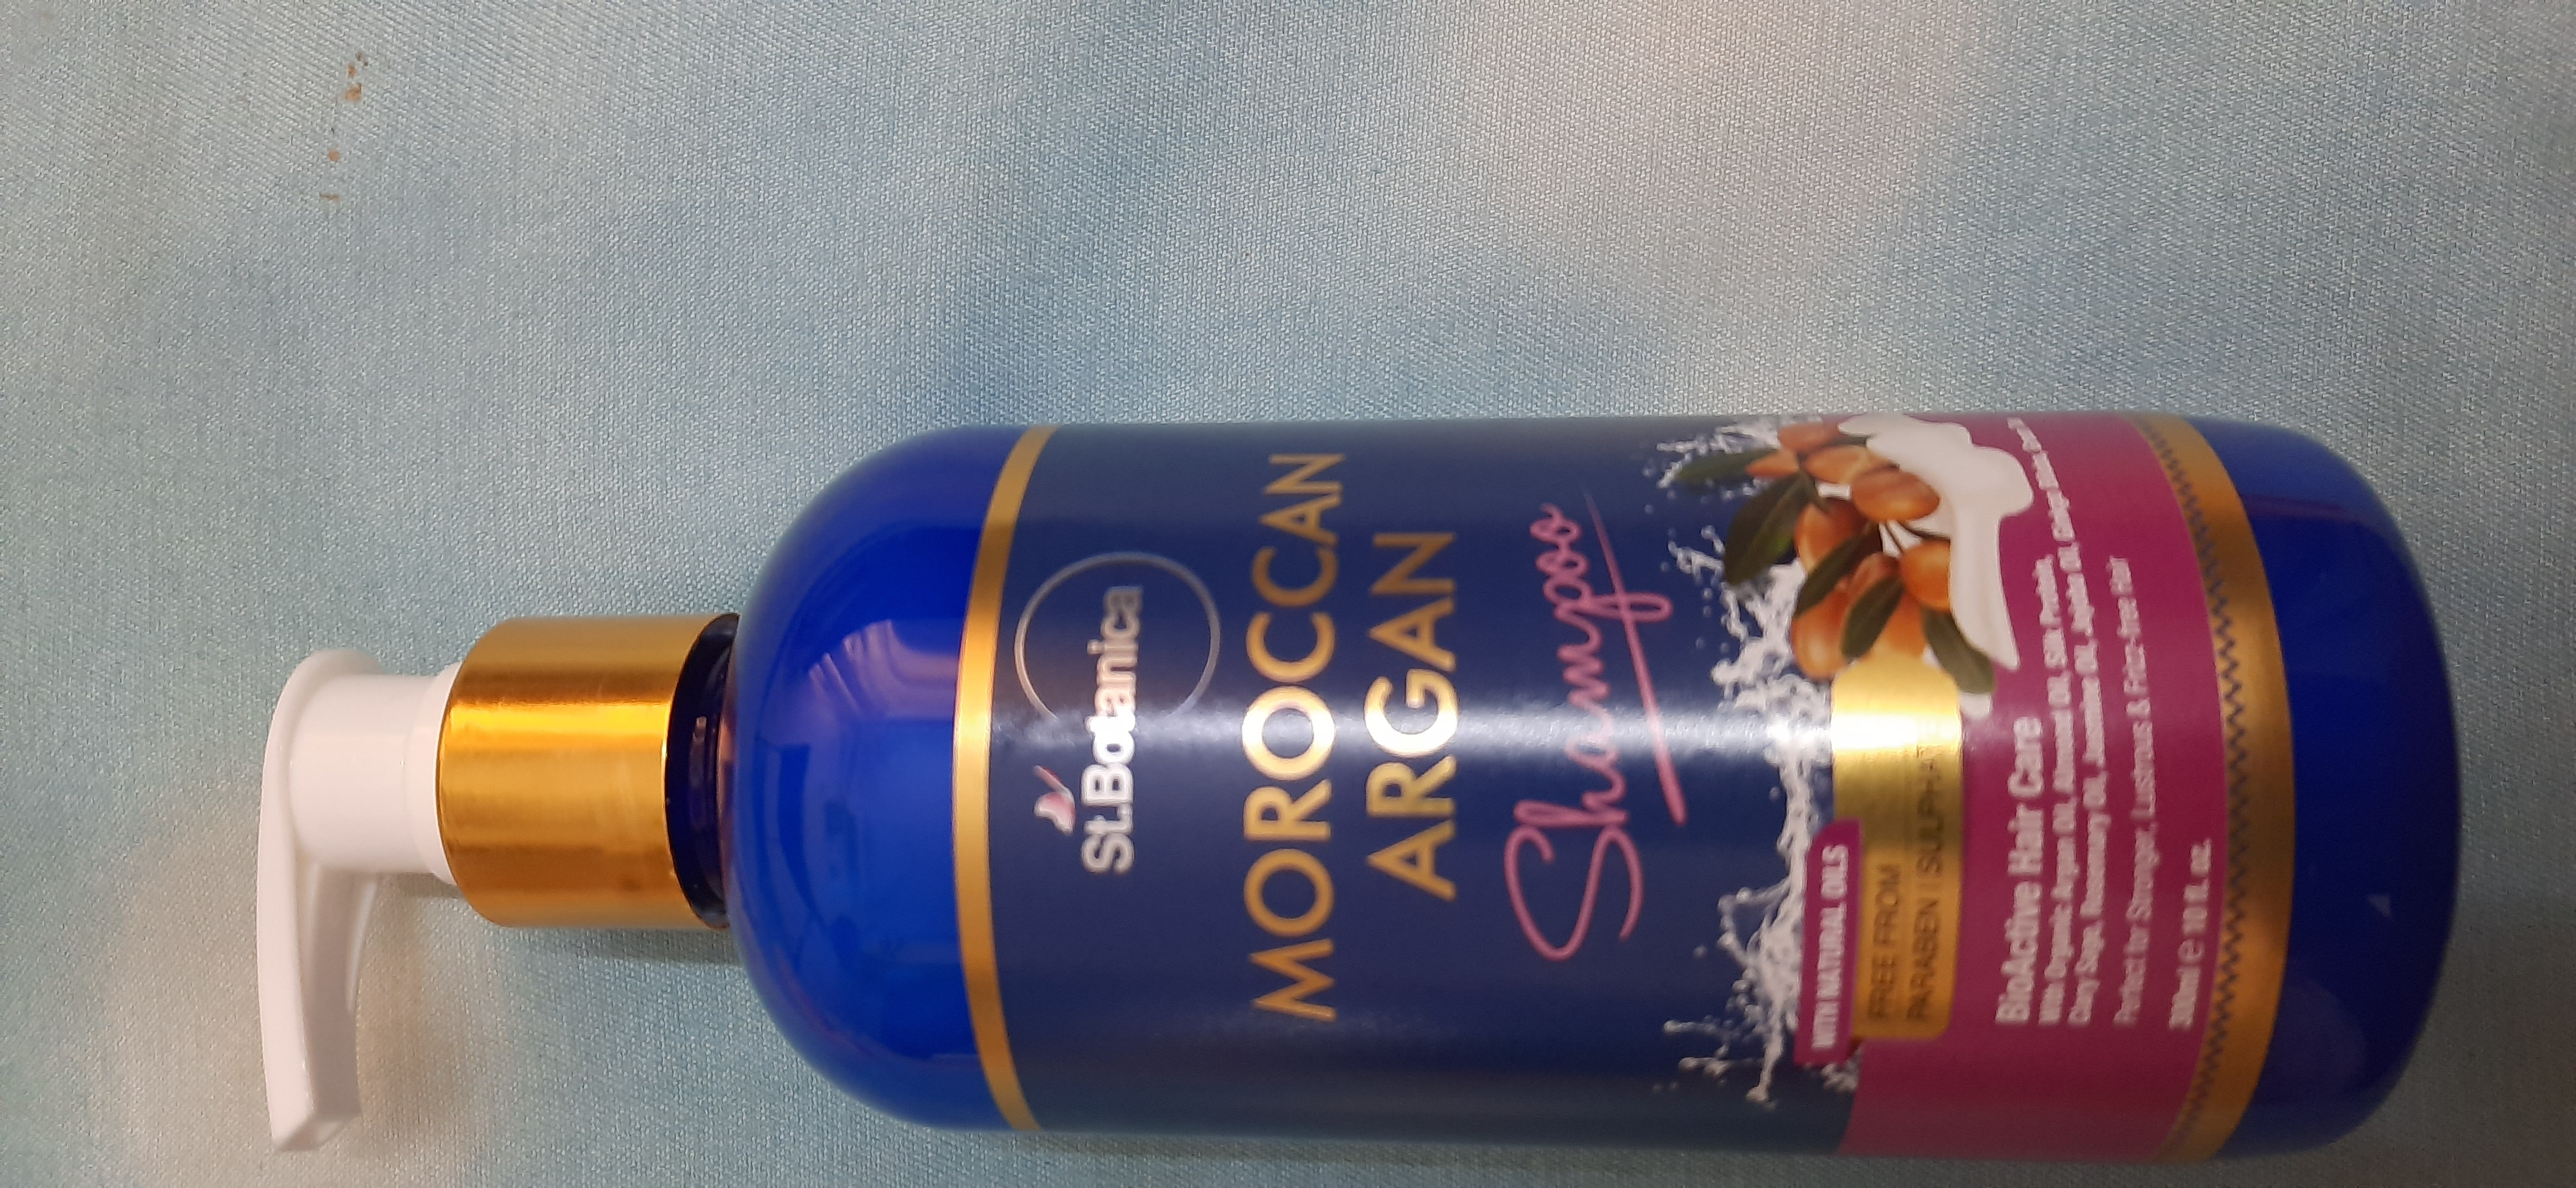 StBotanica Moroccan Argan Hair Shampoo-Must try shampoo-By nikitha_sancheti